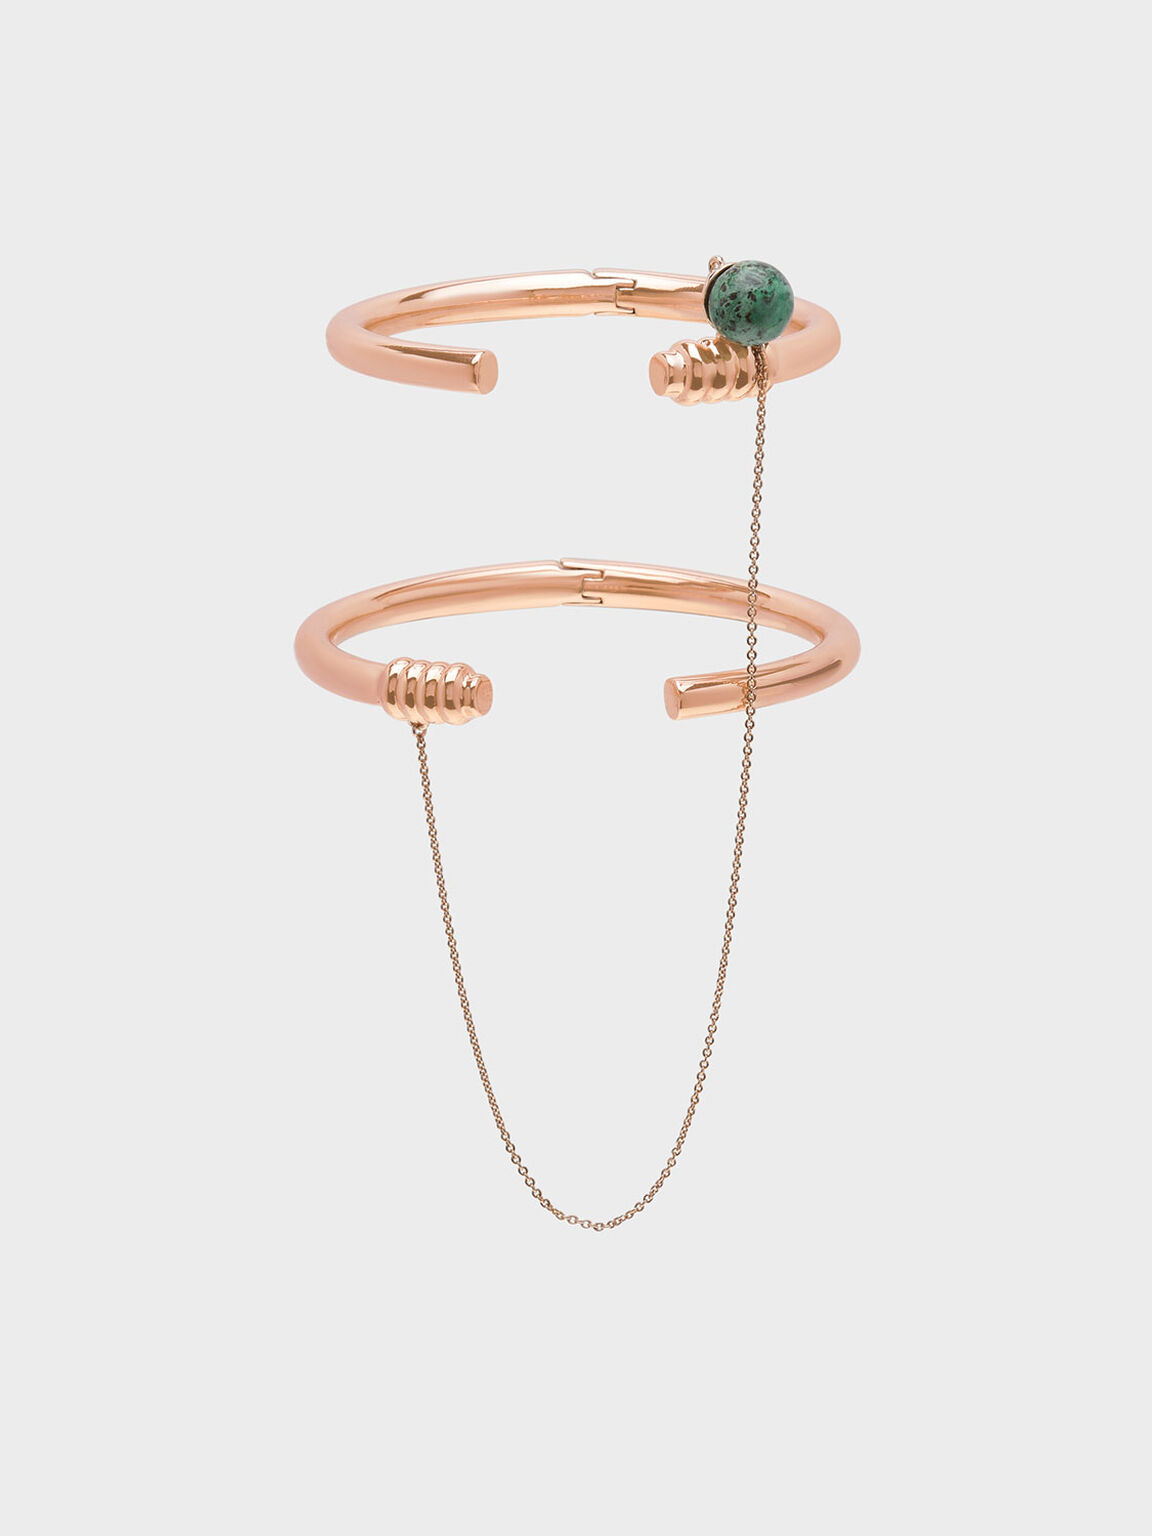 Turquoise Stone Chain Link Bracelet, Rose Gold, hi-res